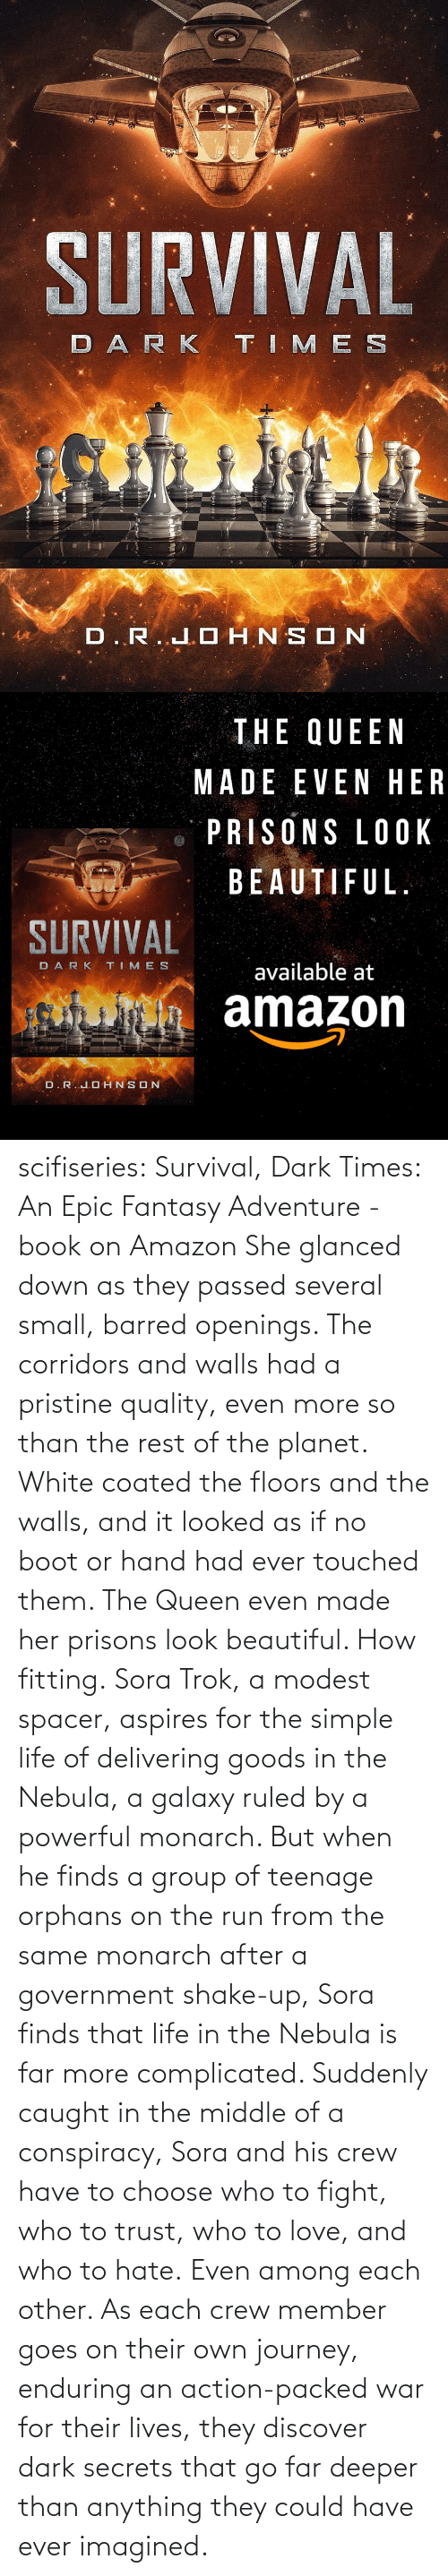 Caught: scifiseries: Survival, Dark Times: An Epic Fantasy Adventure - book on Amazon  She glanced down as they  passed several small, barred openings. The corridors and walls had a  pristine quality, even more so than the rest of the planet. White coated  the floors and the walls, and it looked as if no boot or hand had ever  touched them.  The Queen even made her prisons look beautiful.  How fitting. Sora  Trok, a modest spacer, aspires for the simple life of delivering goods  in the Nebula, a galaxy ruled by a powerful monarch. But when he finds a  group of teenage orphans on the run from the same monarch after a  government shake-up, Sora finds that life in the Nebula is far more complicated.  Suddenly  caught in the middle of a conspiracy, Sora and his crew have to choose  who to fight, who to trust, who to love, and who to hate. Even among each other.  As  each crew member goes on their own journey, enduring an action-packed  war for their lives, they discover dark secrets that go far deeper than  anything they could have ever imagined.